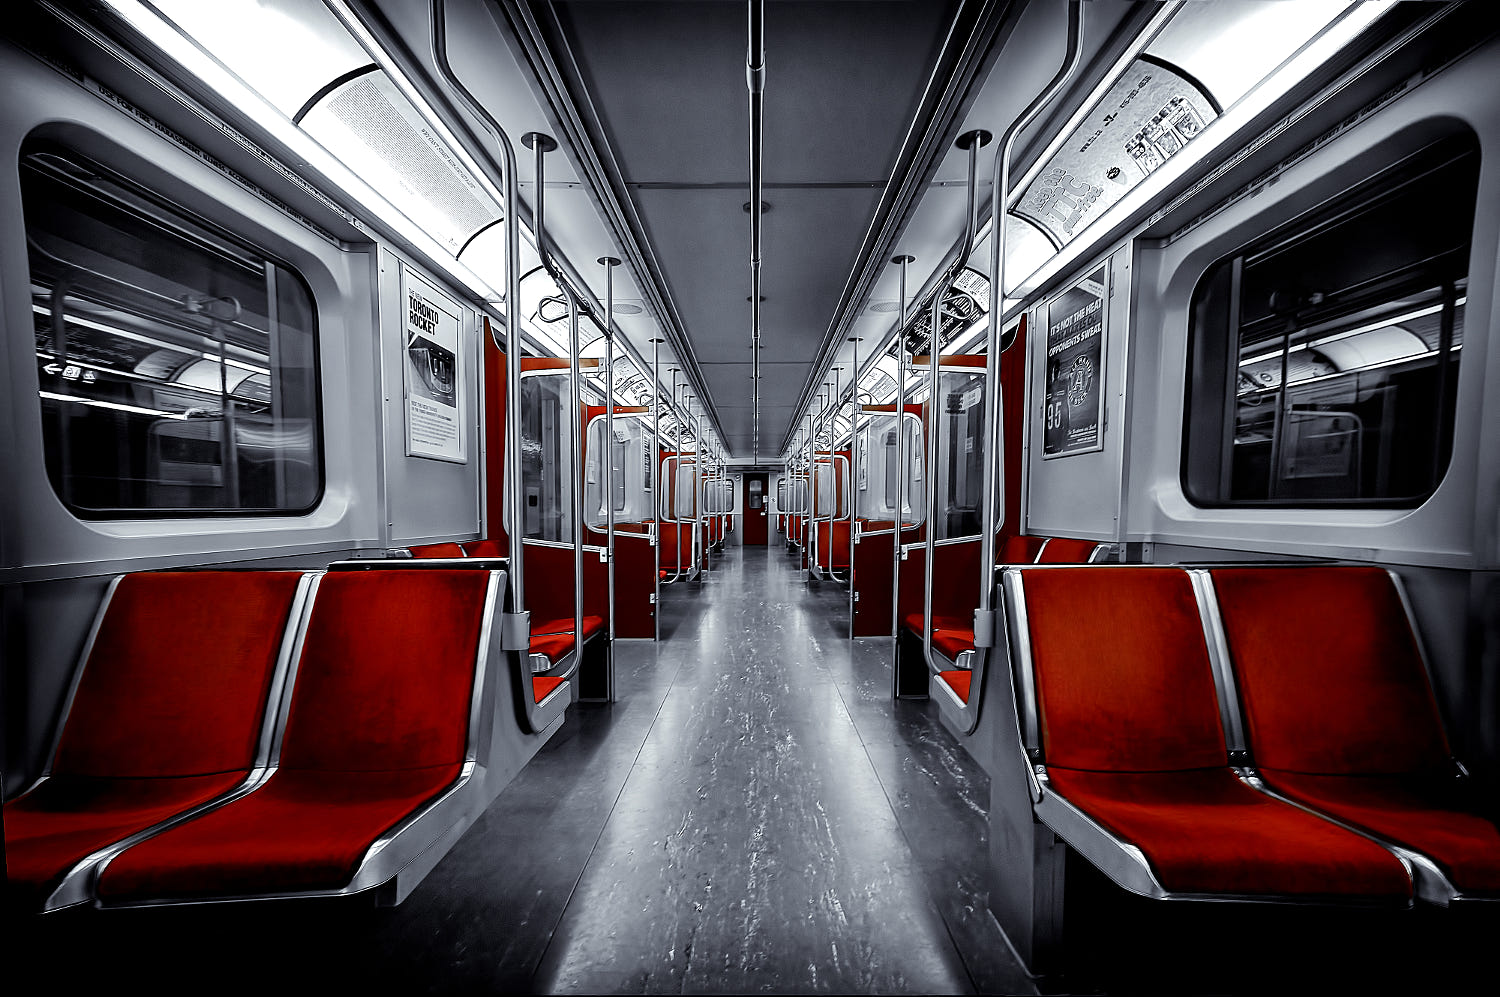 symmetry photography abstract subway car